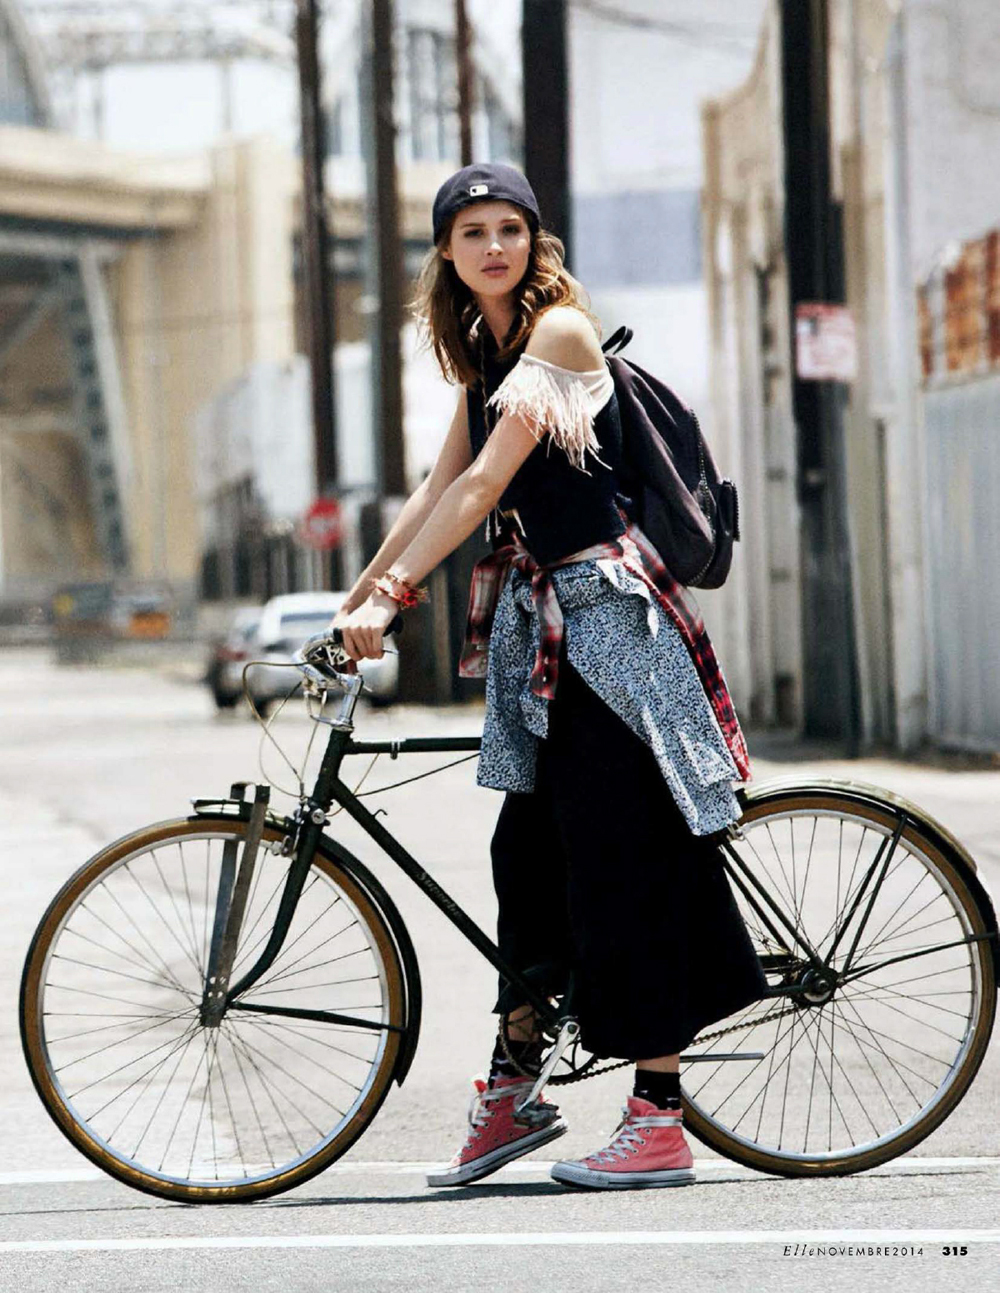 That skirt might get caught in the spokes though.